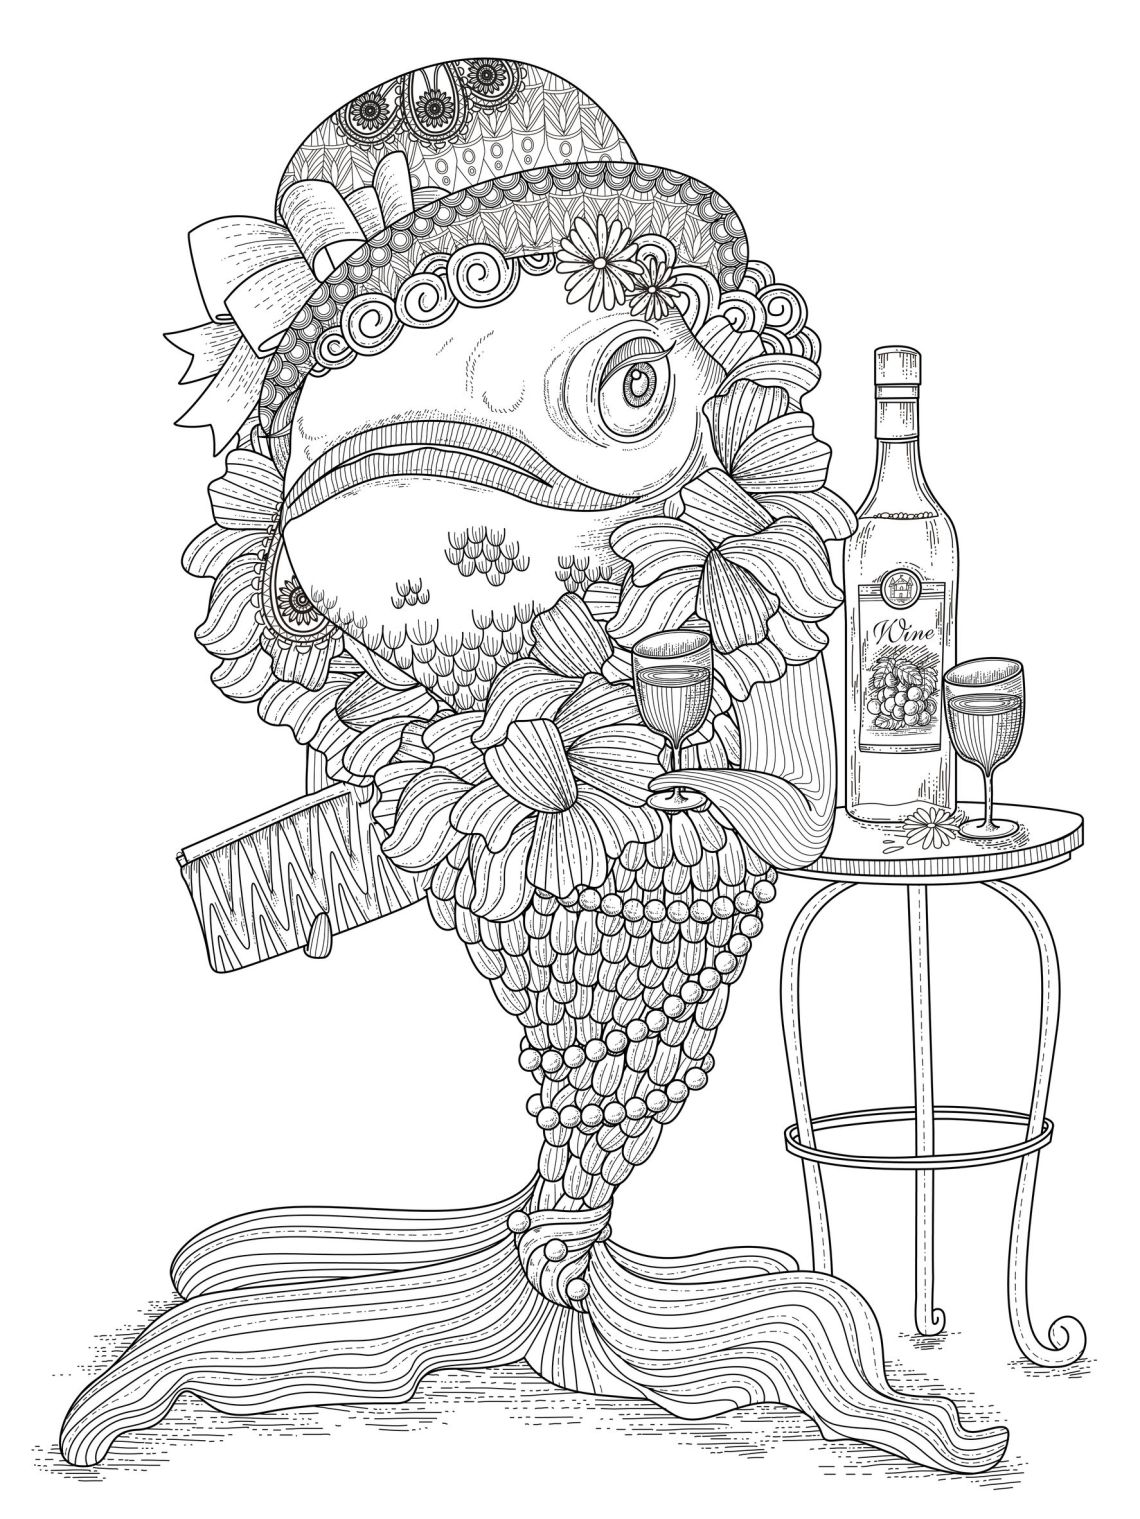 Fish humour - Water worlds Adult Coloring Pages | colouring pages for adults funny